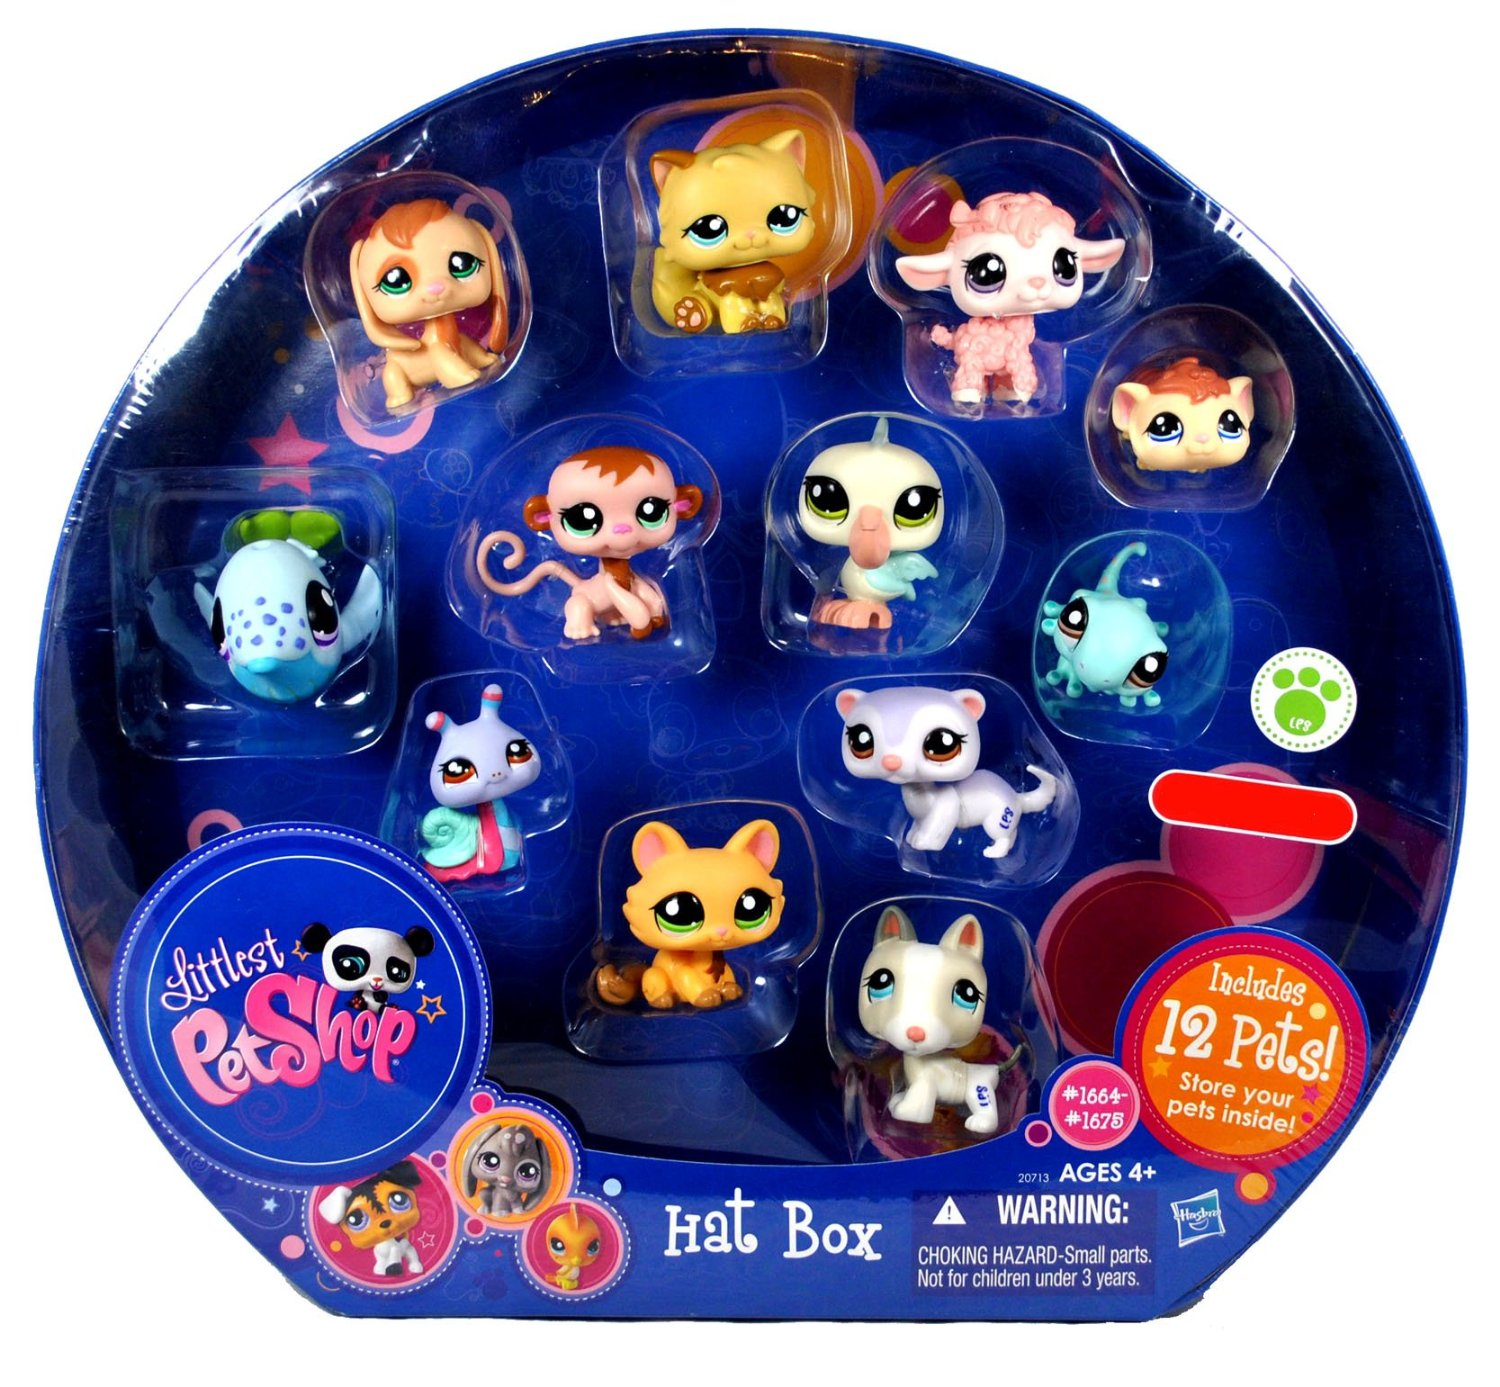 Littlest Pet Shop Exclusive Collectible 12 Pack Bobble Head Pets Figure Set - Hat Box with Brown Beagle Puppy (#1664), White Bull Terrier Puppy (#1665), White Lilac Ferret (#1666), Green Gecko (#1667), Brown Guinea Pig (#1668), Orange Kitty Cat (#1669), Pink Baby Lamb (#1670), Brown Baby Monkey